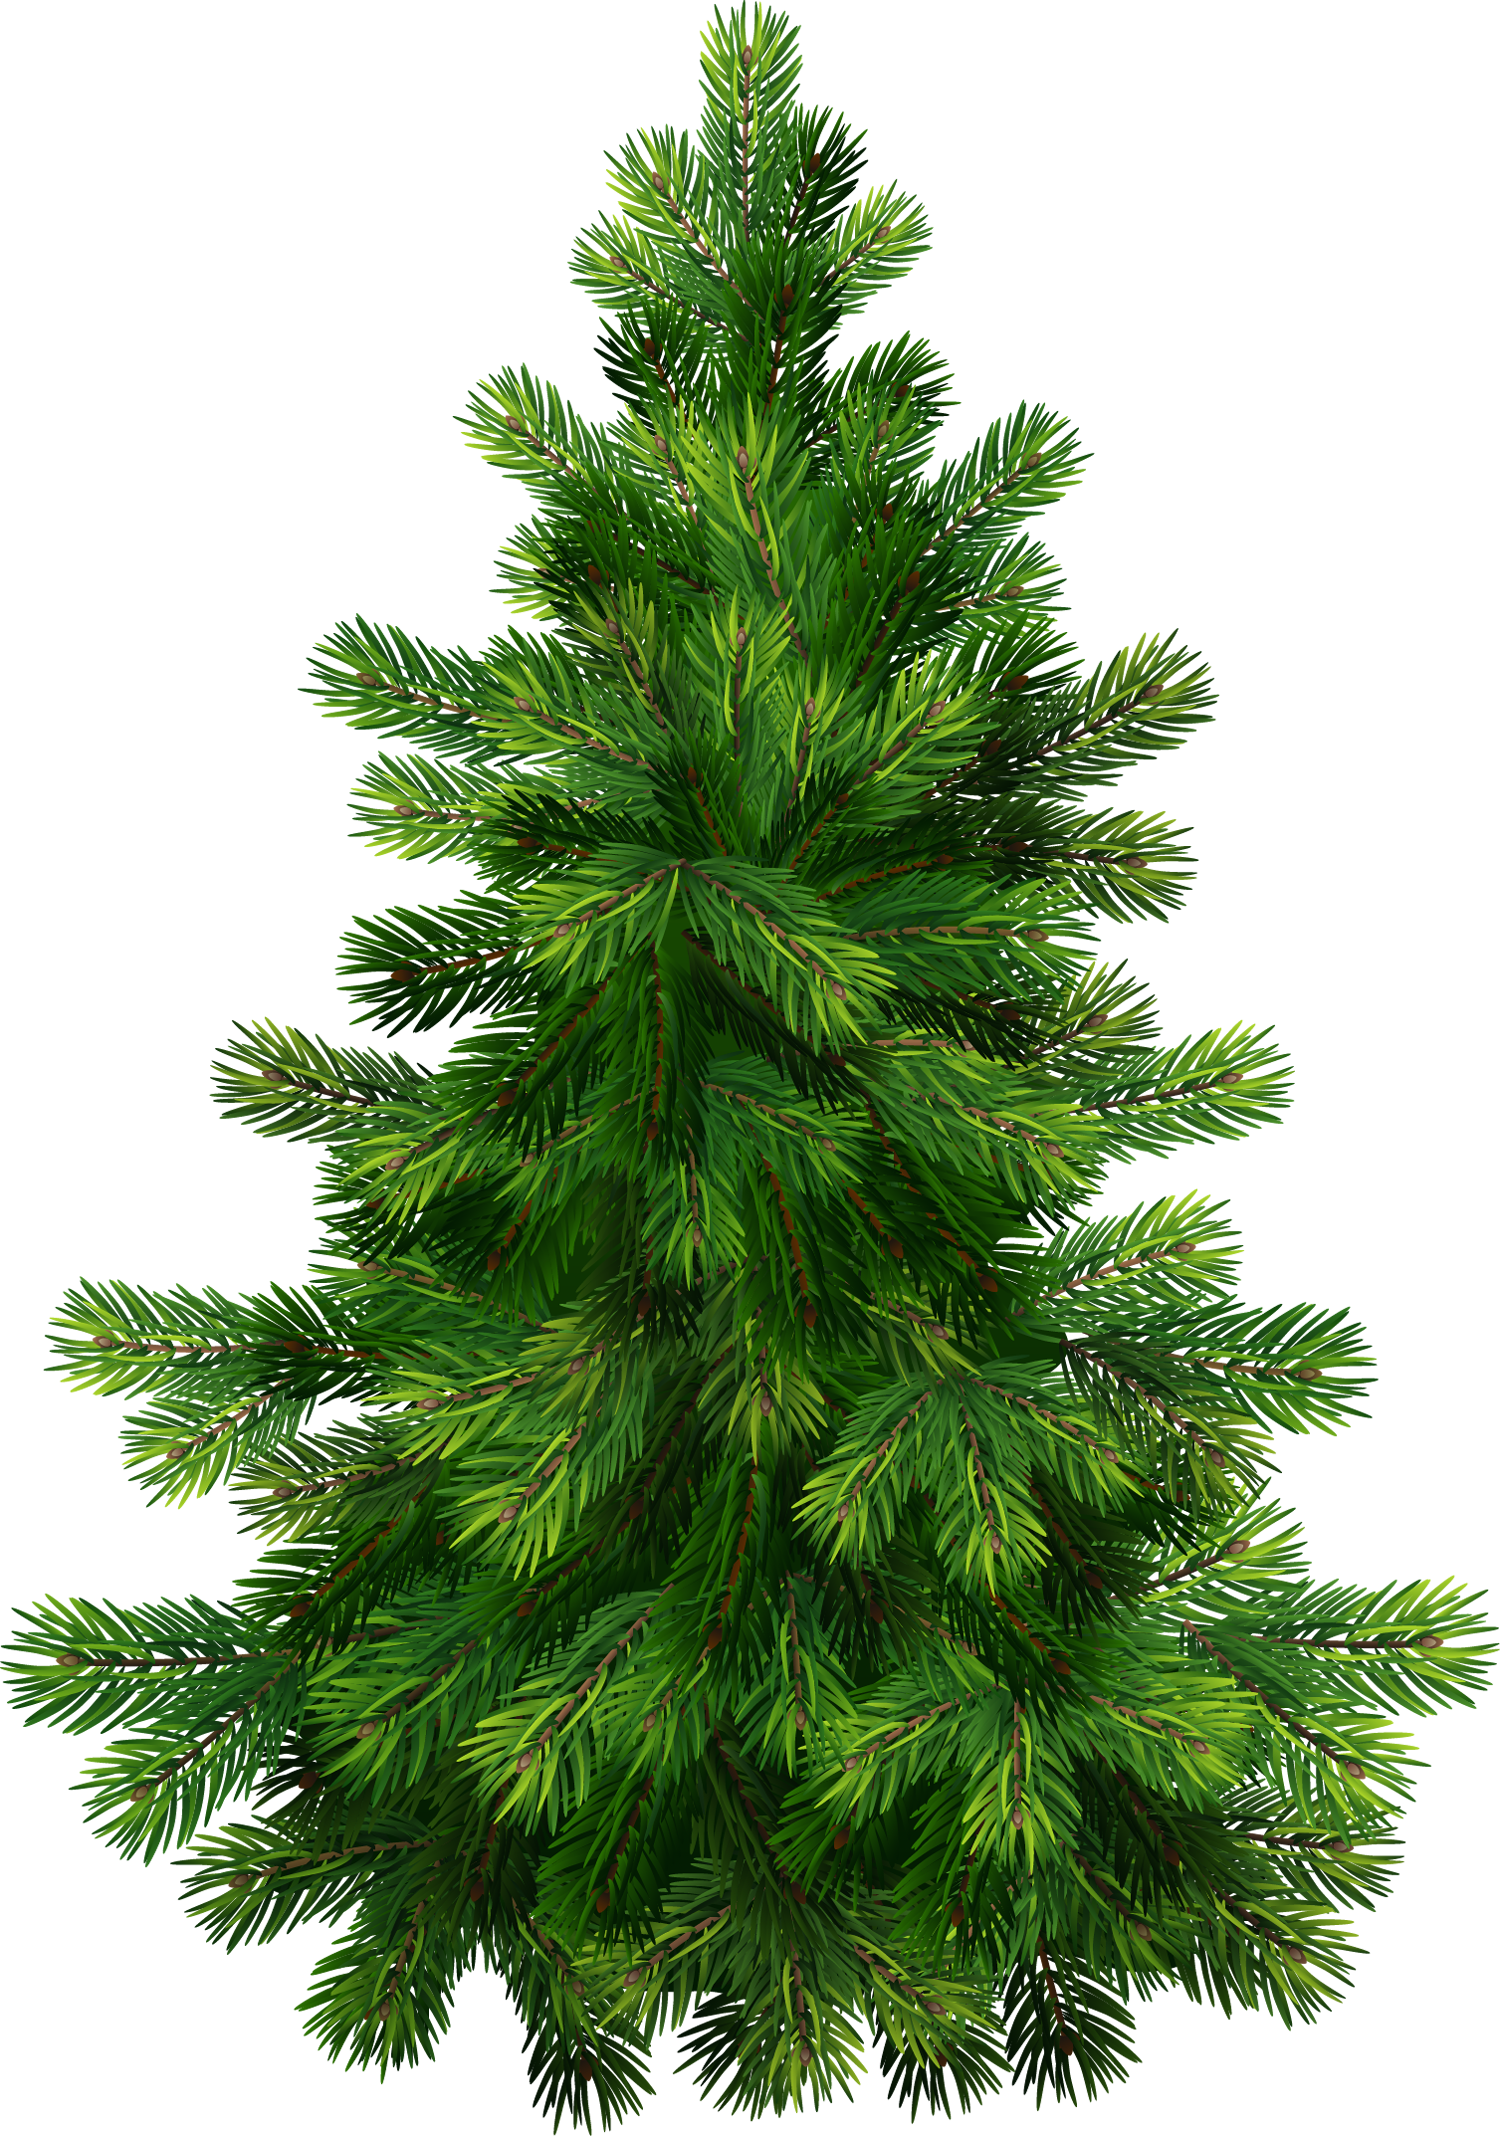 Pine clipart #2, Download drawings